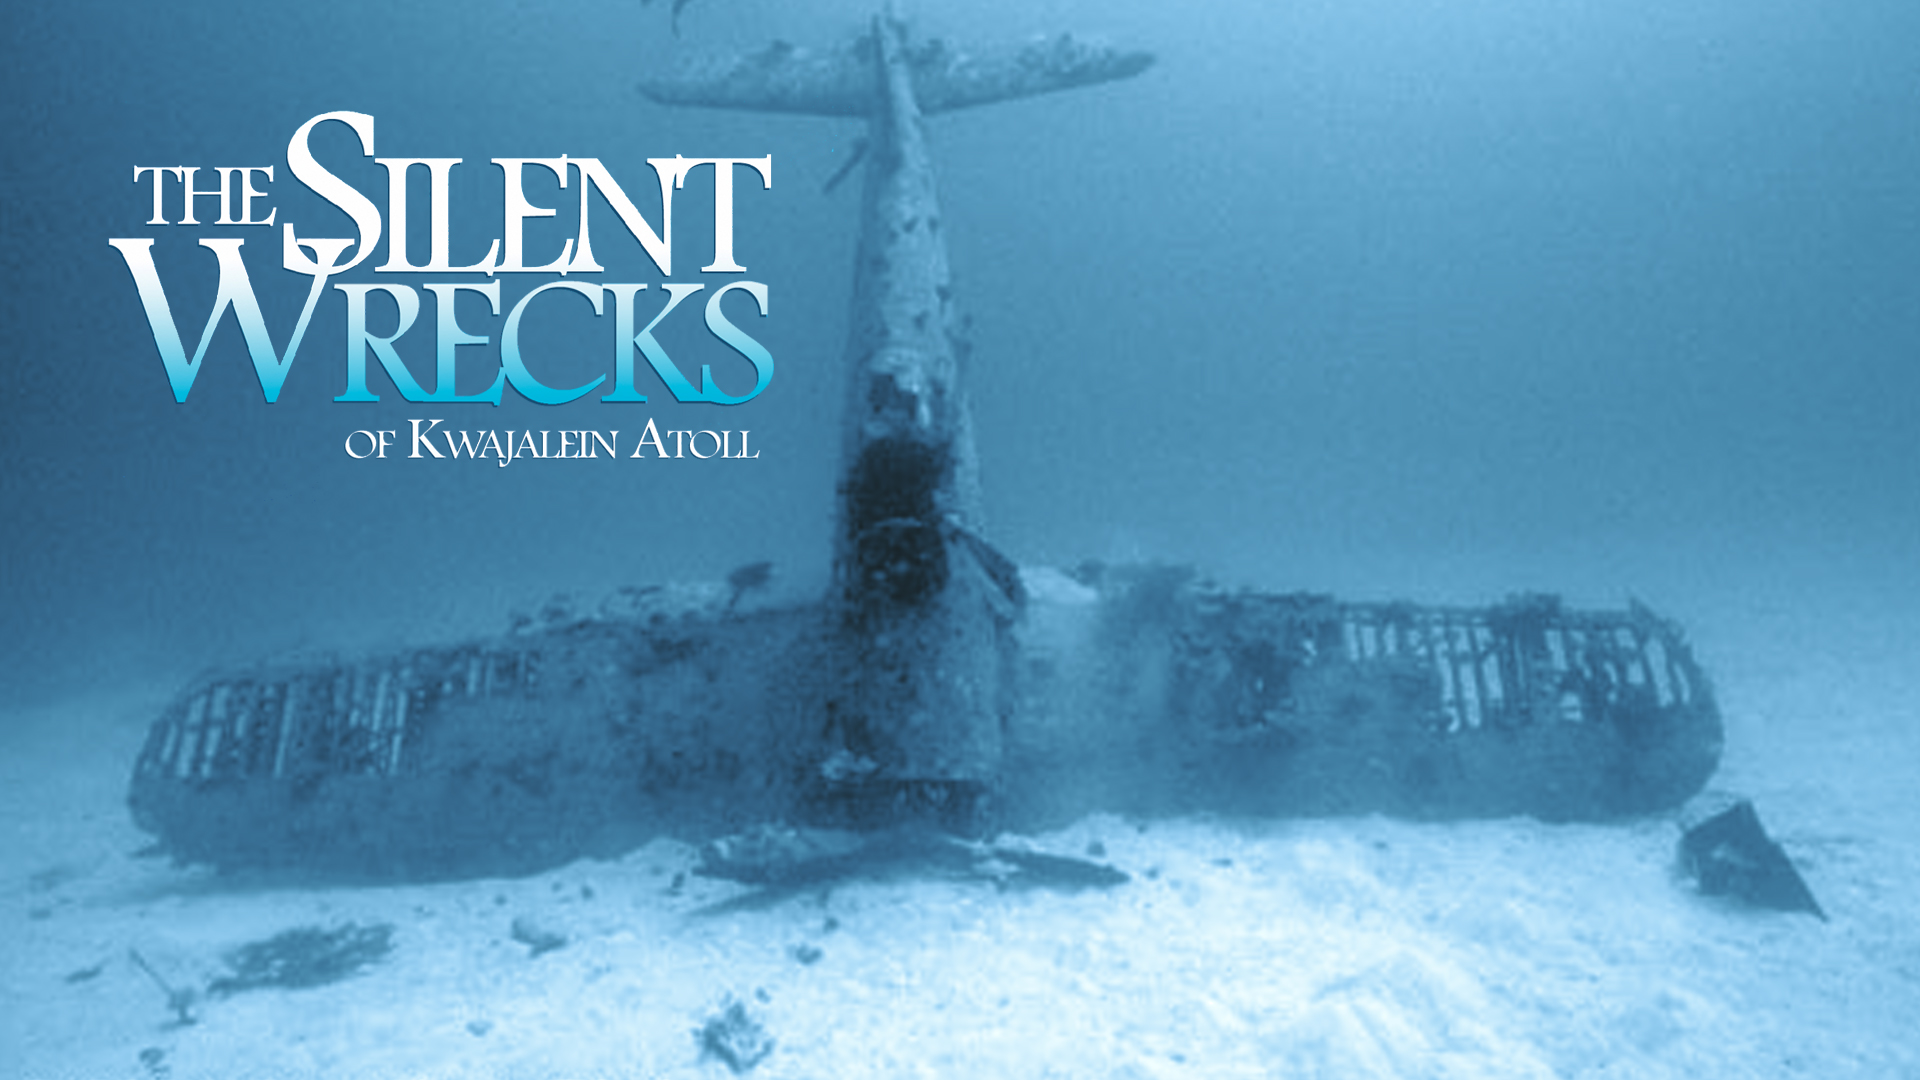 The Silent Wrecks of Kwajalein Atoll